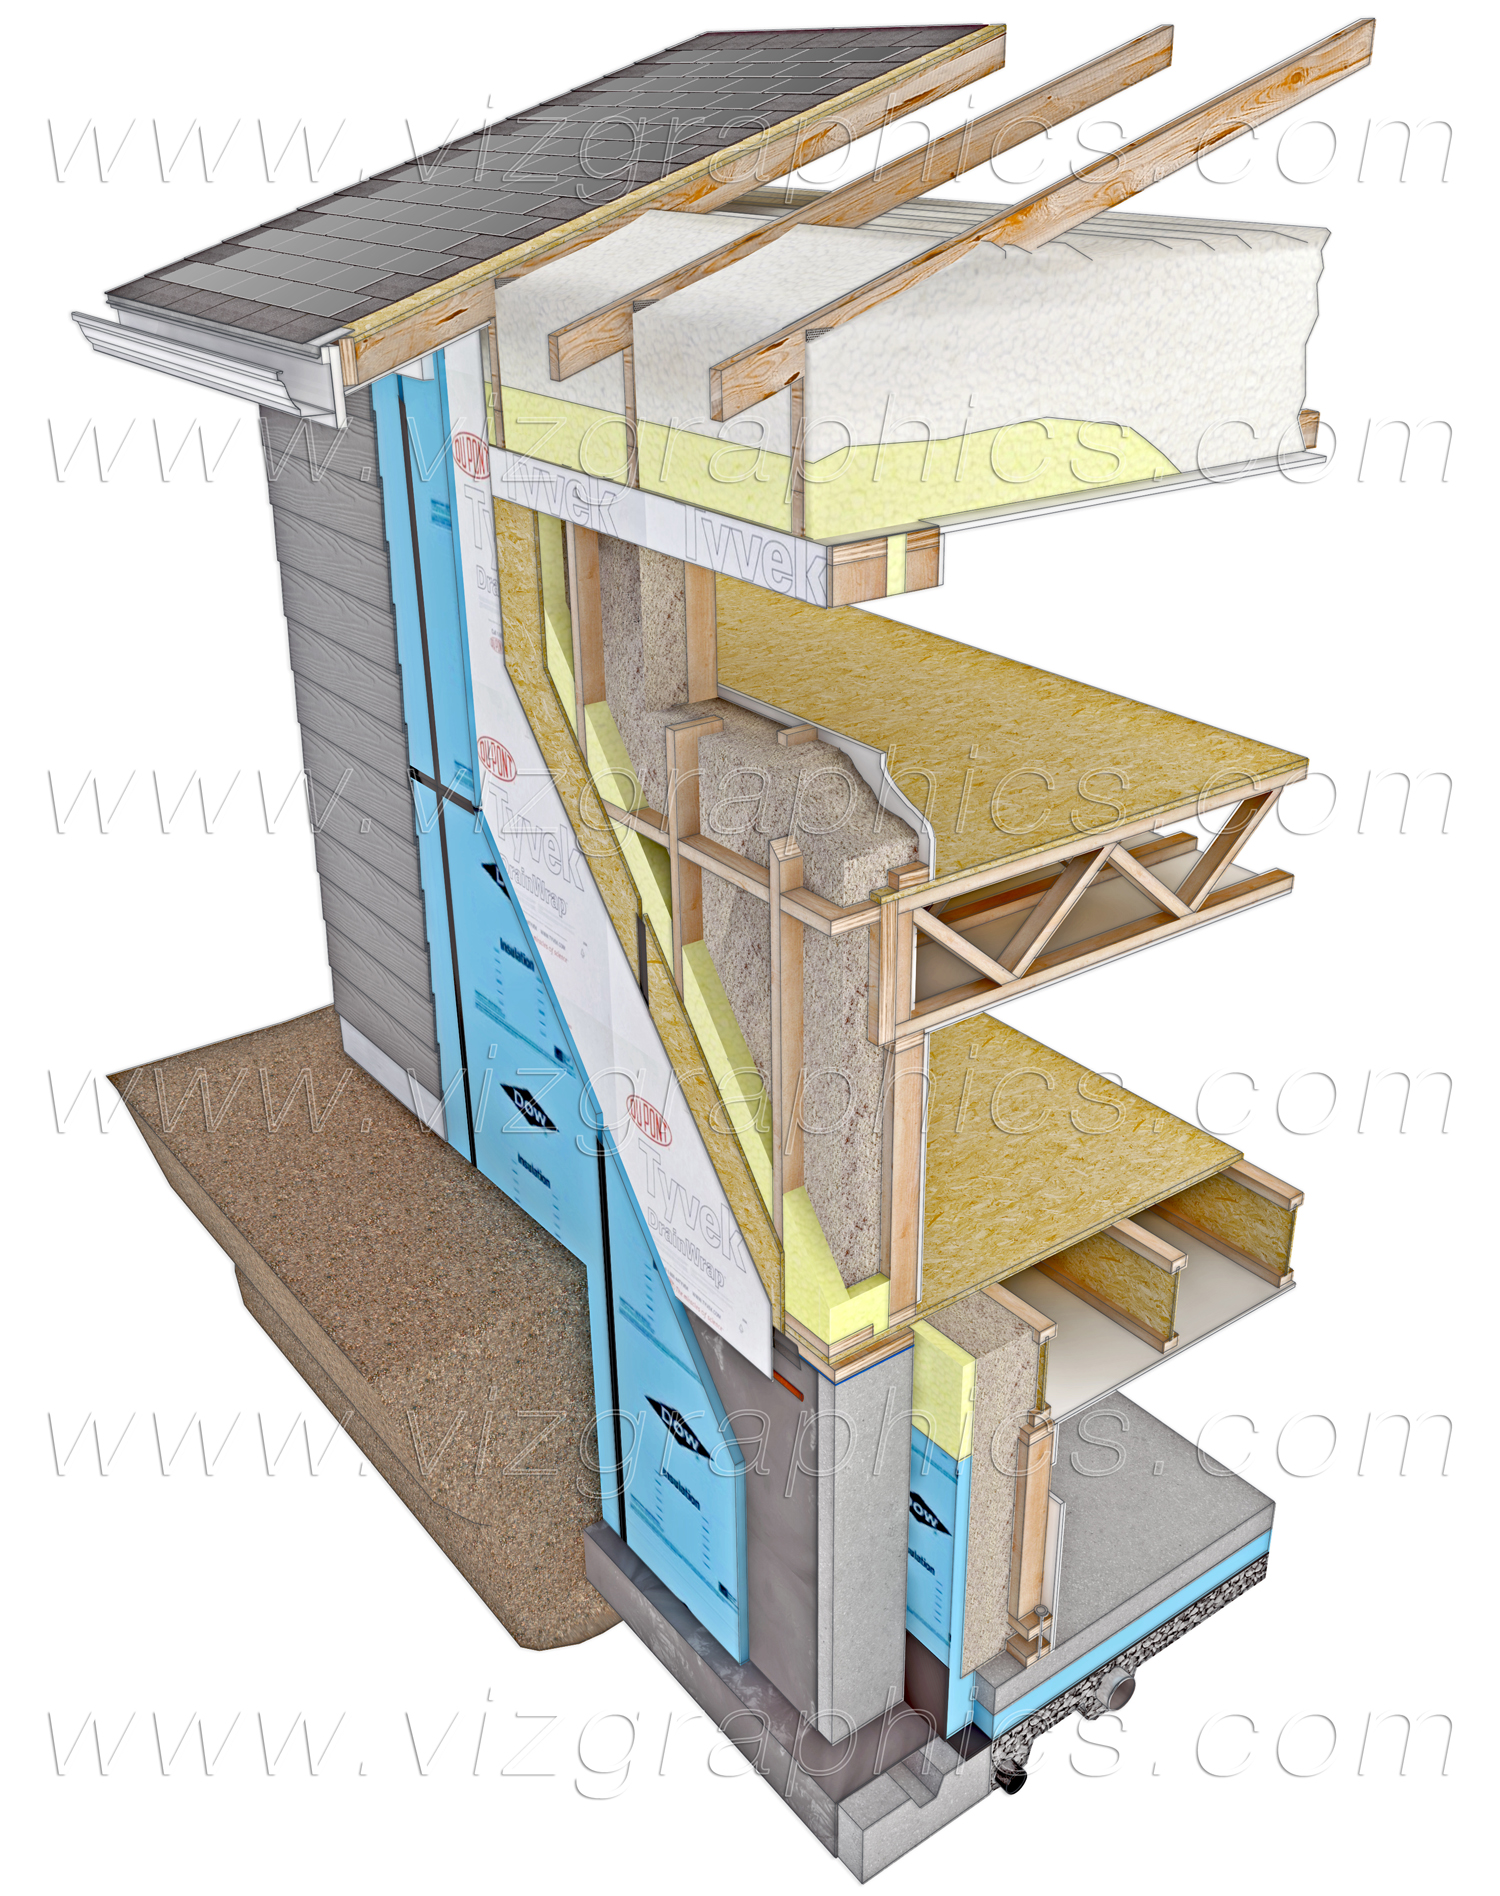 Passive Solar Wall Section Cutaway Rendering_WM